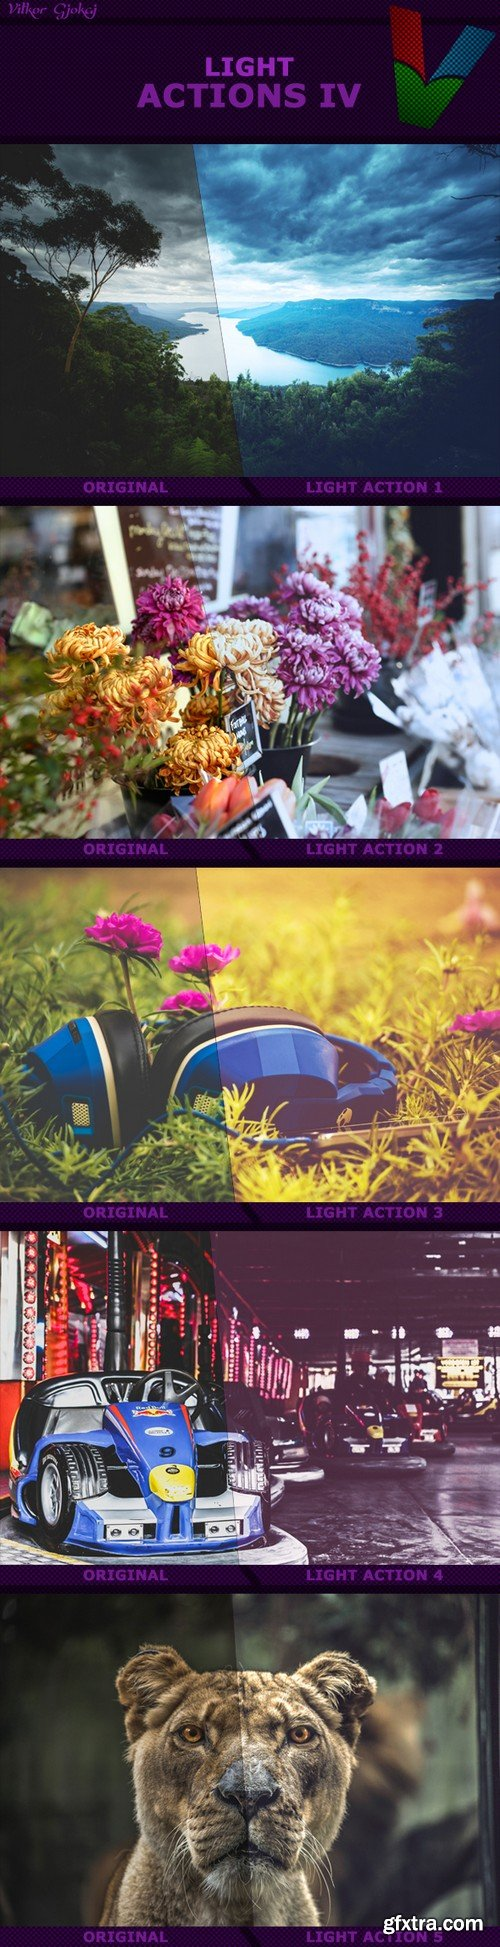 Graphicriver - Light Actions IV 15786594